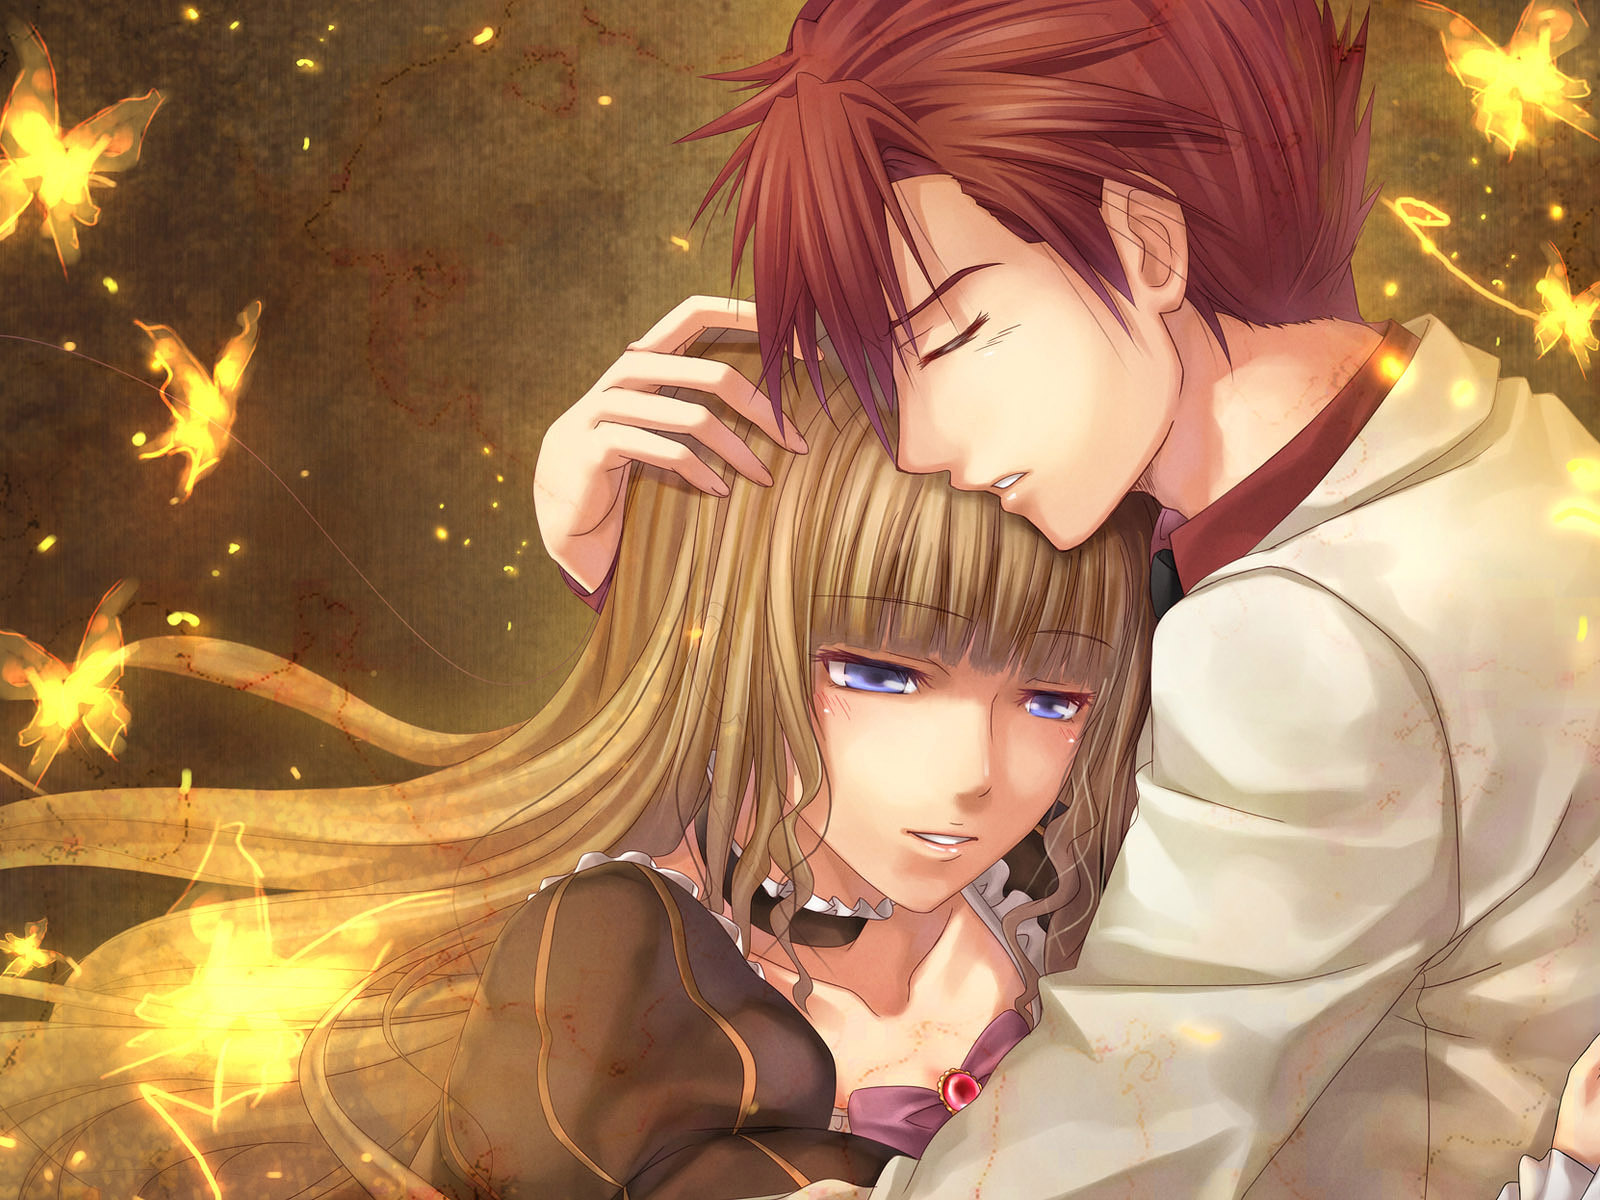 Best wallpapers collection best anime girls wallpapers ii - Best anime images website ...